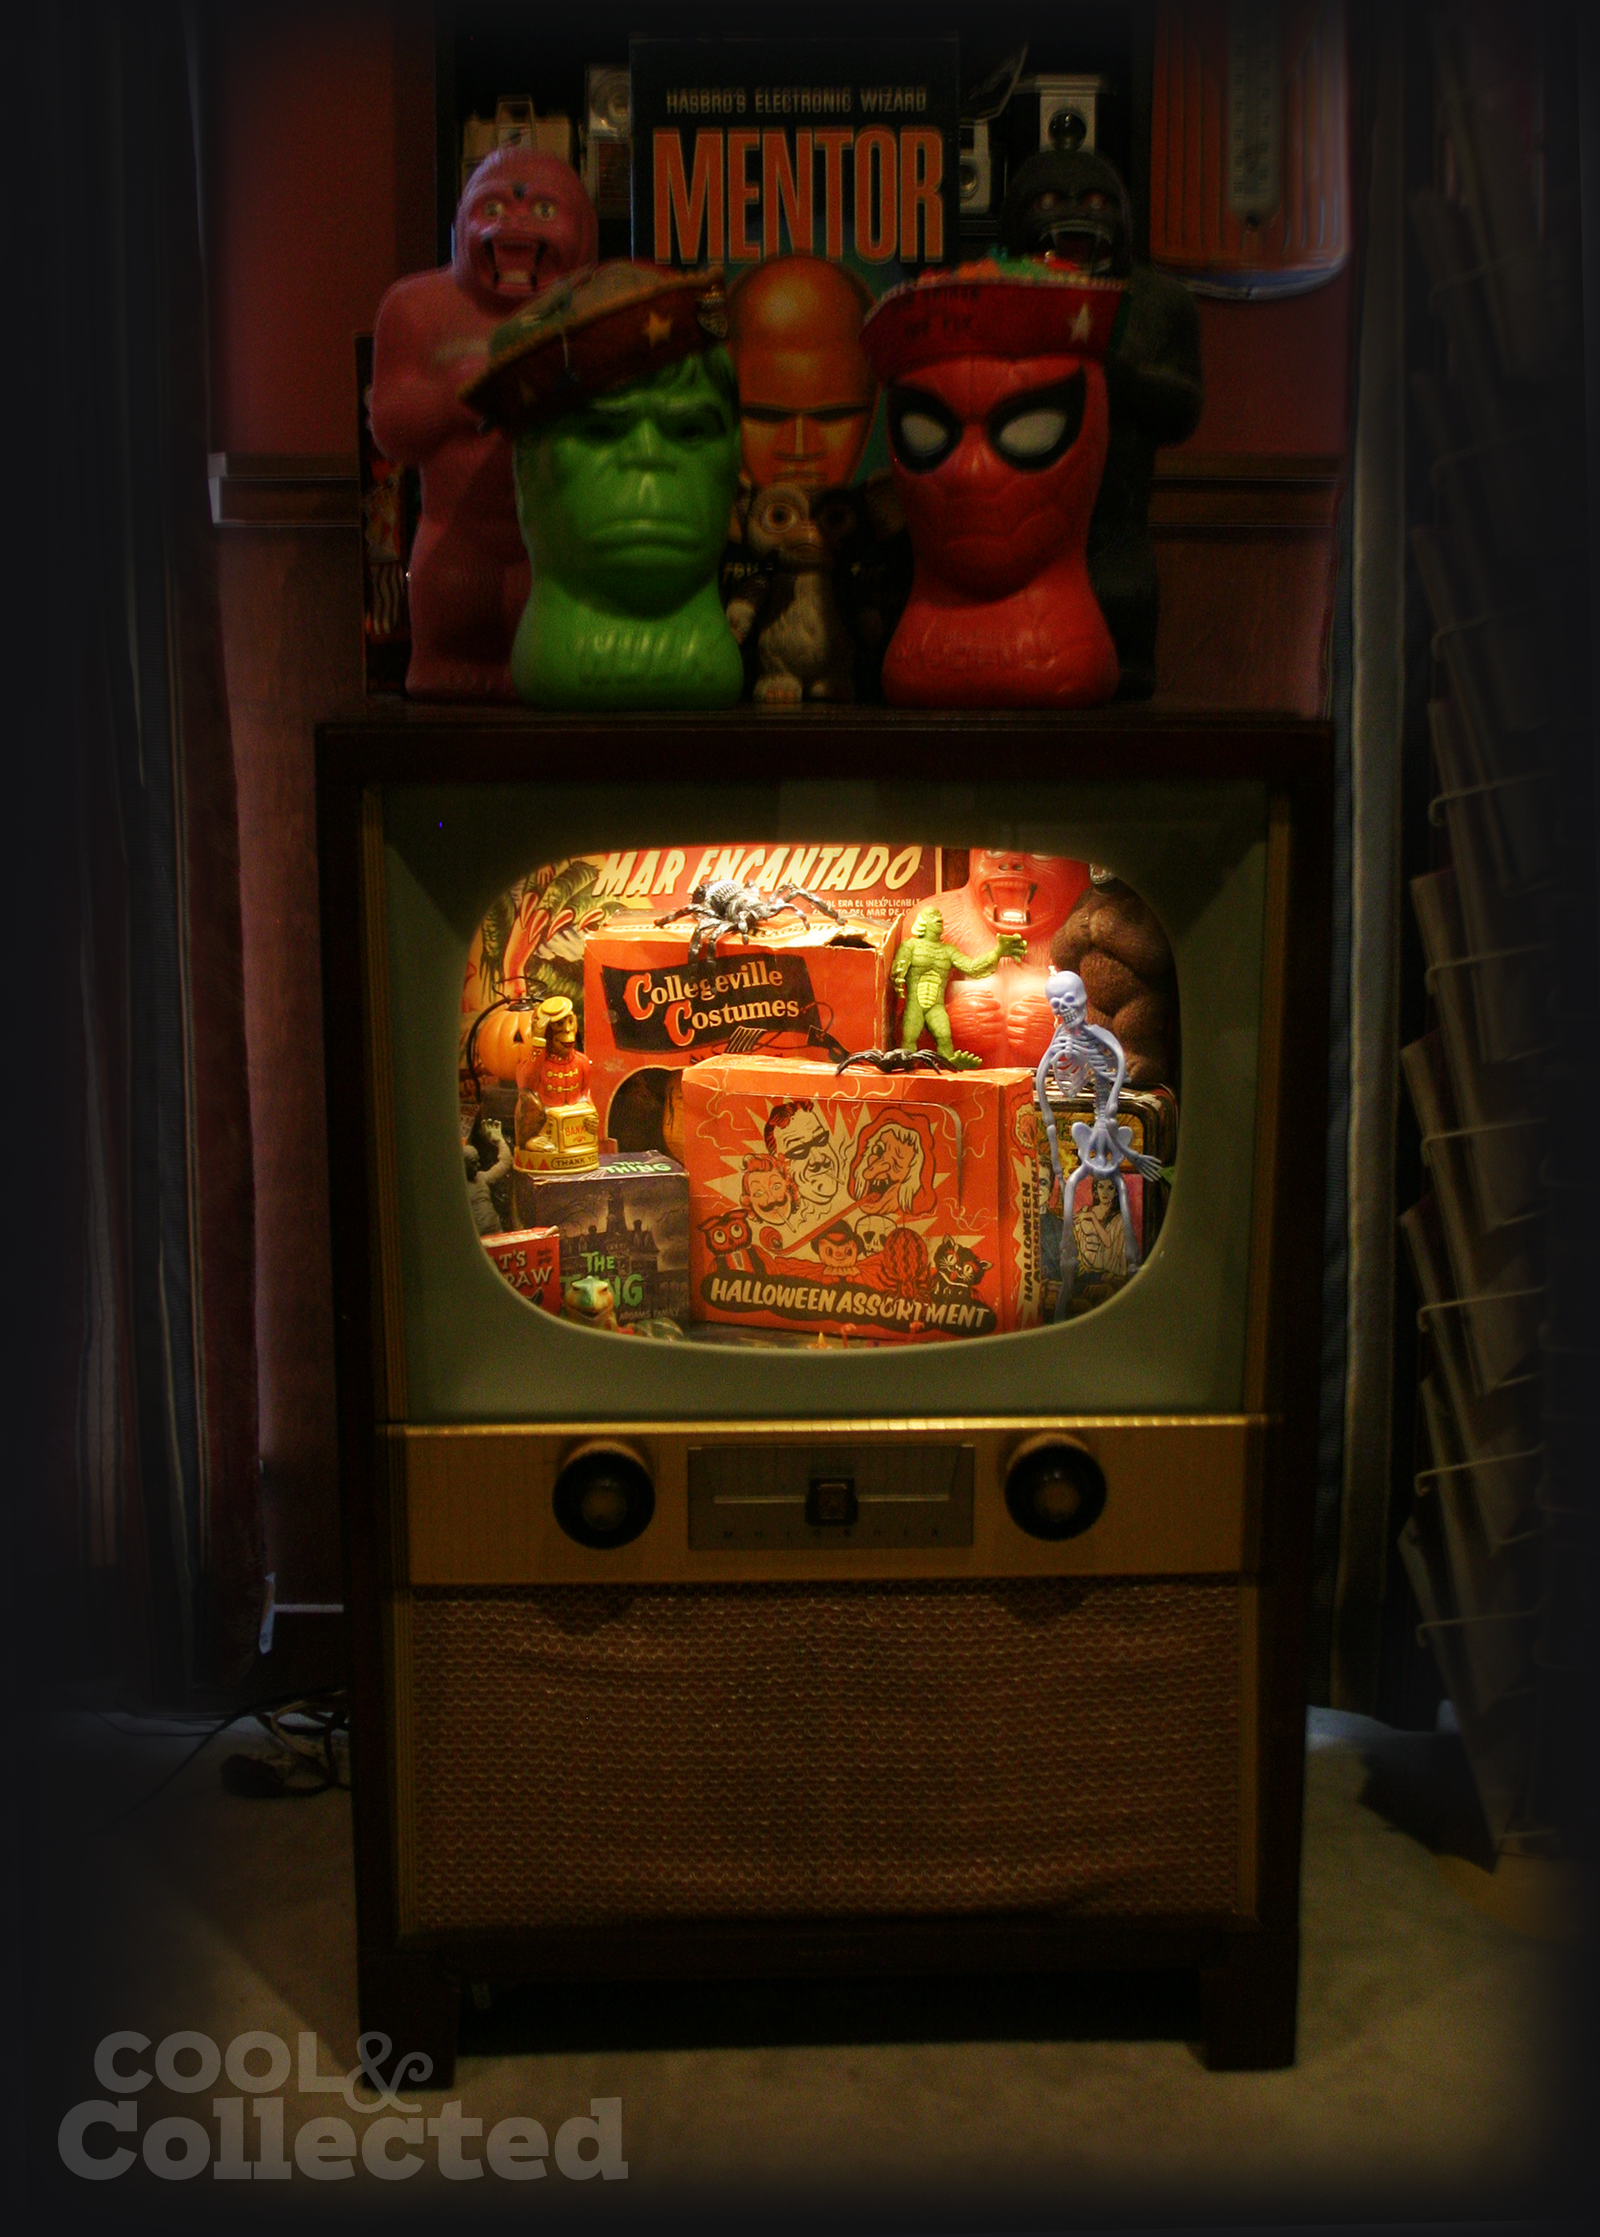 Vintage Halloween collection displayed in a retro TV cabinet